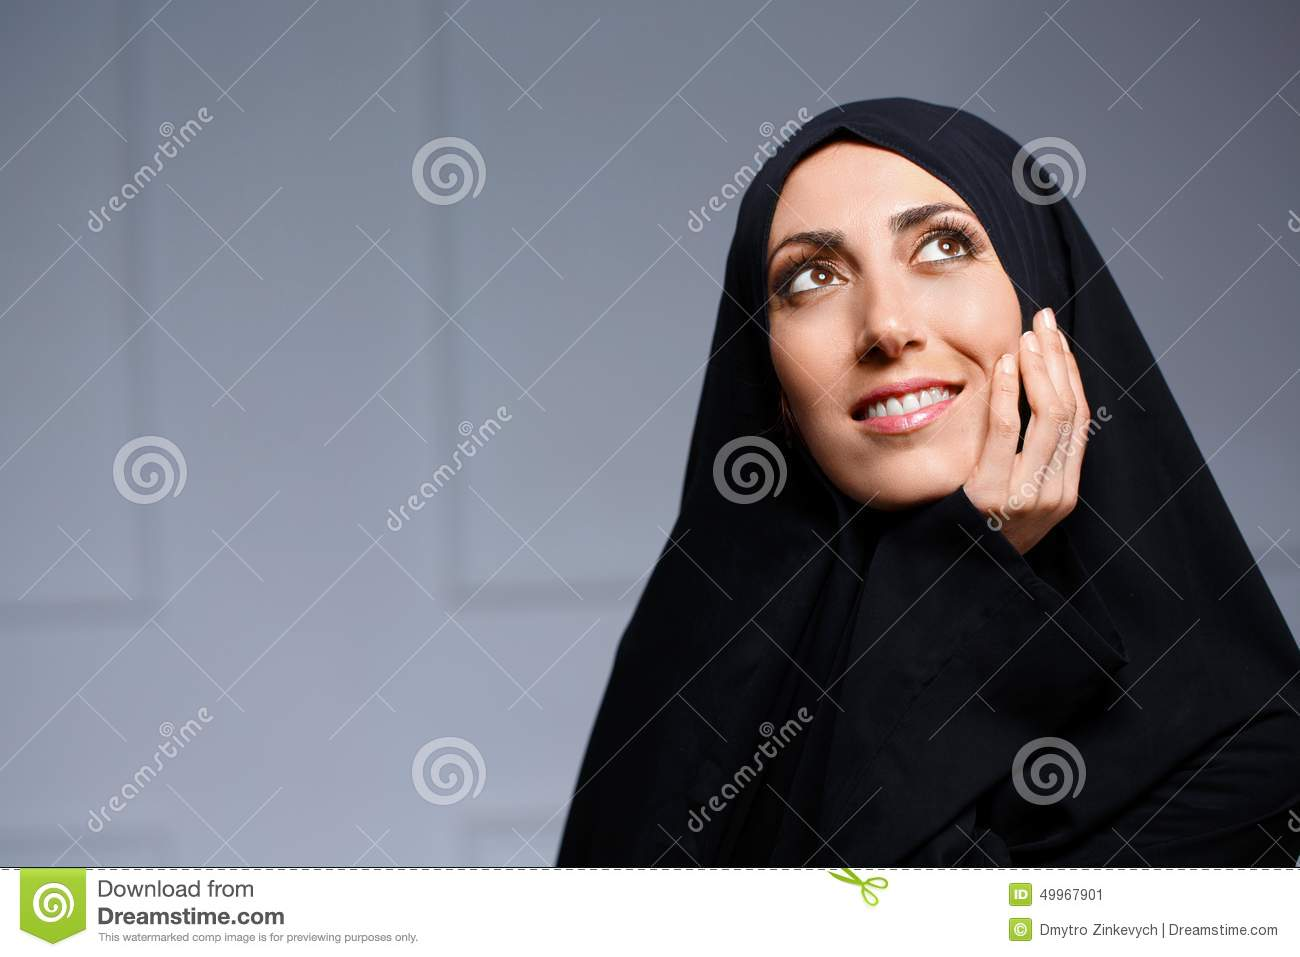 muslim single women in wolfcreek The muslim woman status, rights, hijab, marriage, and more.